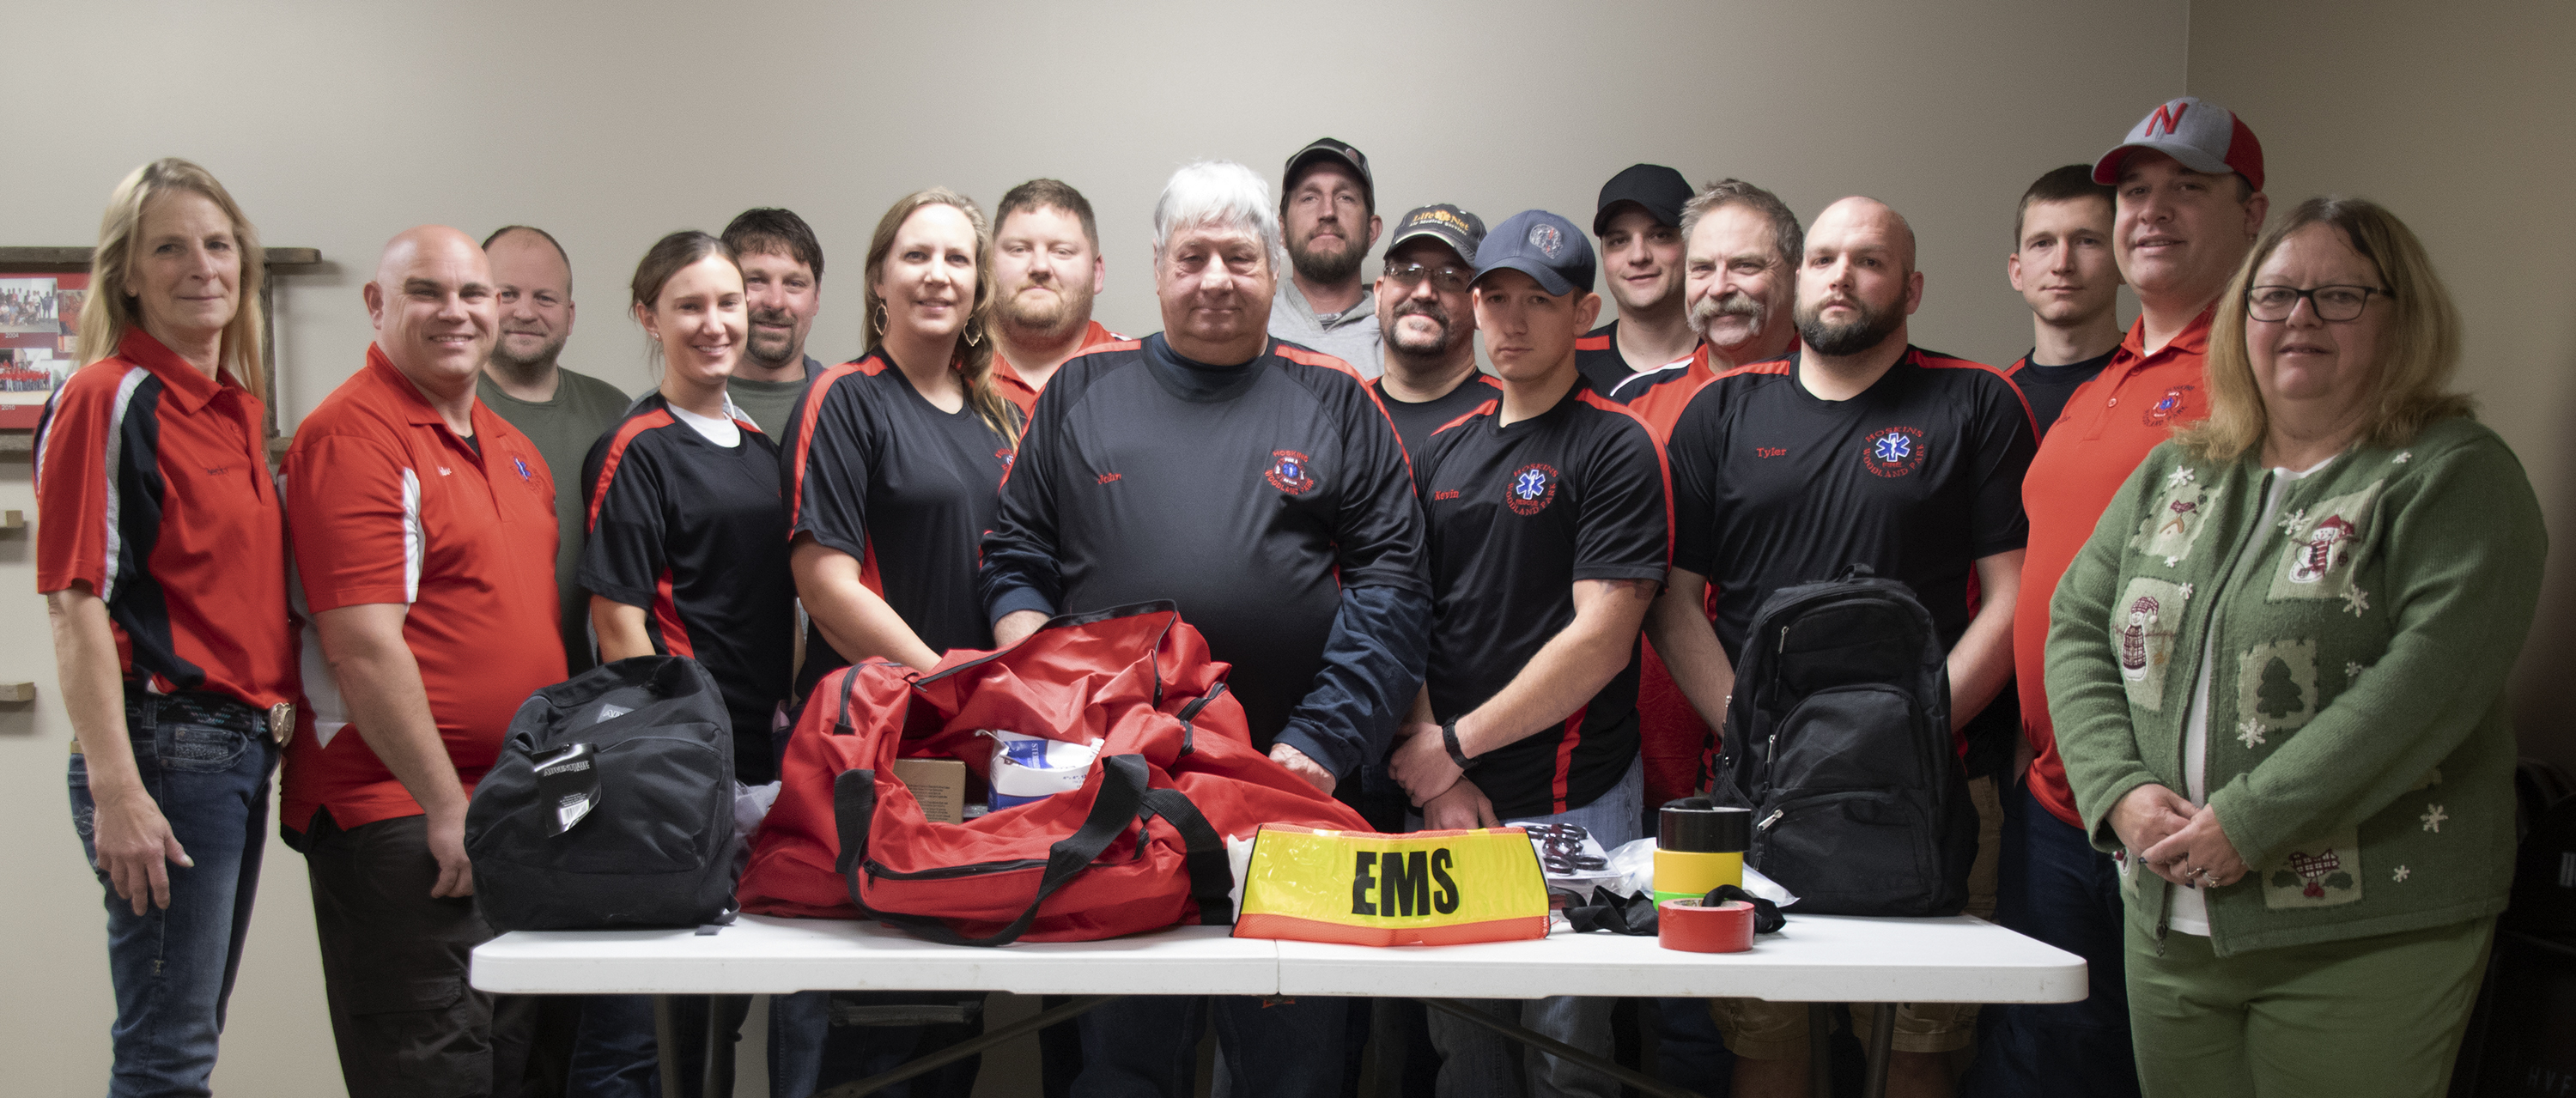 Village of Hoskins purchases safety items for the Rescue Team